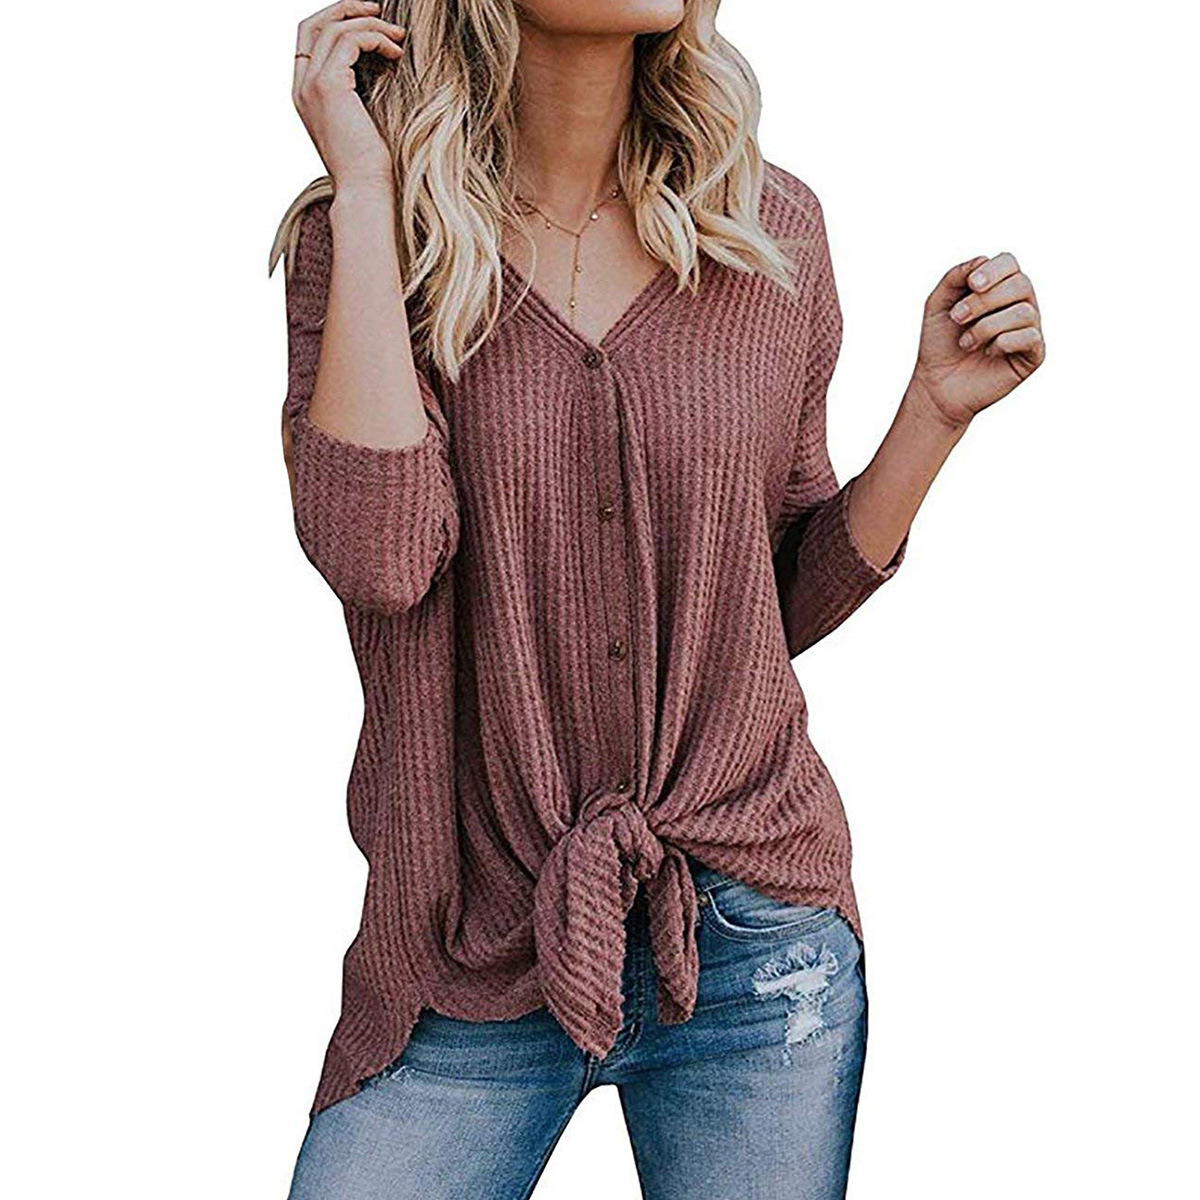 VITIANA Women Loose Casual Shirts Tops Female 2018 Autumn Winter Long Sleeve Solid Black Knitted Pollover Sweater T-shirts